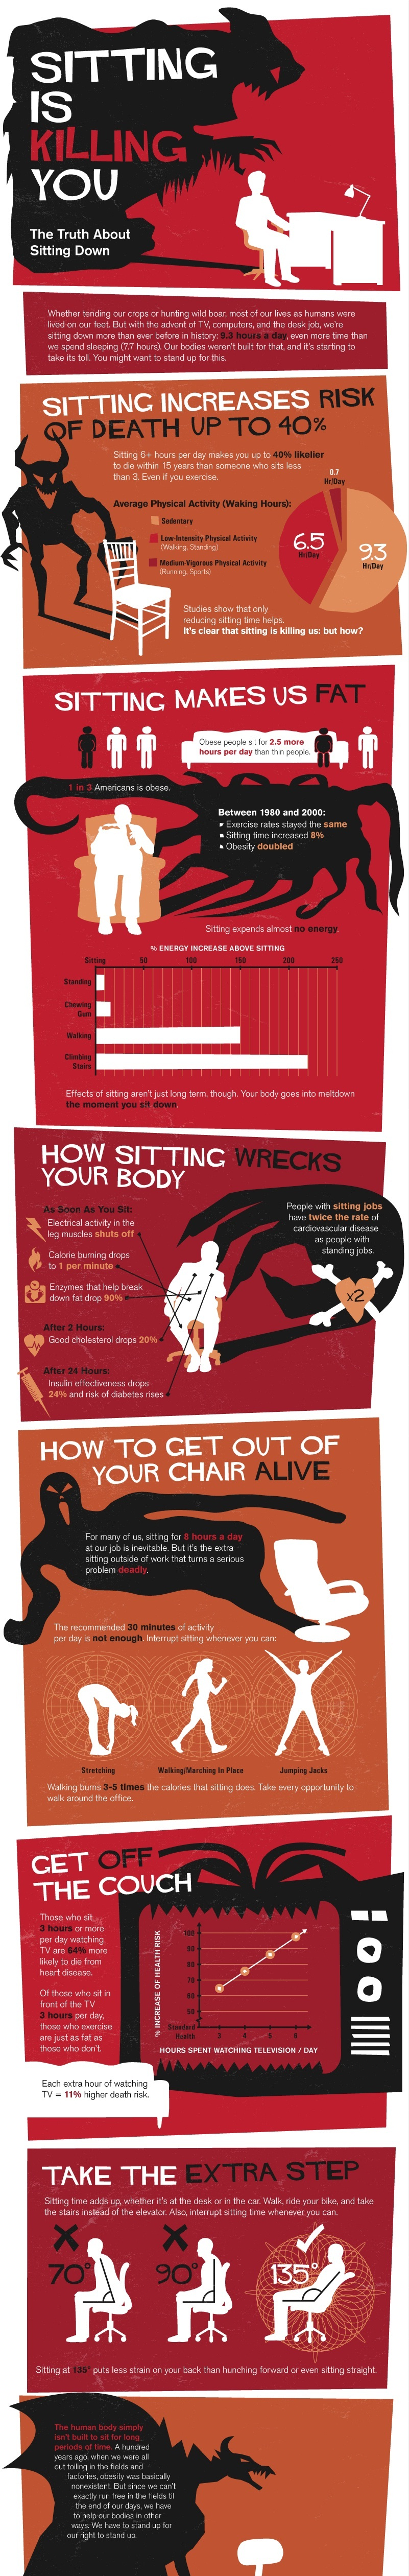 reason-why-sitting-is-killing-you infographic